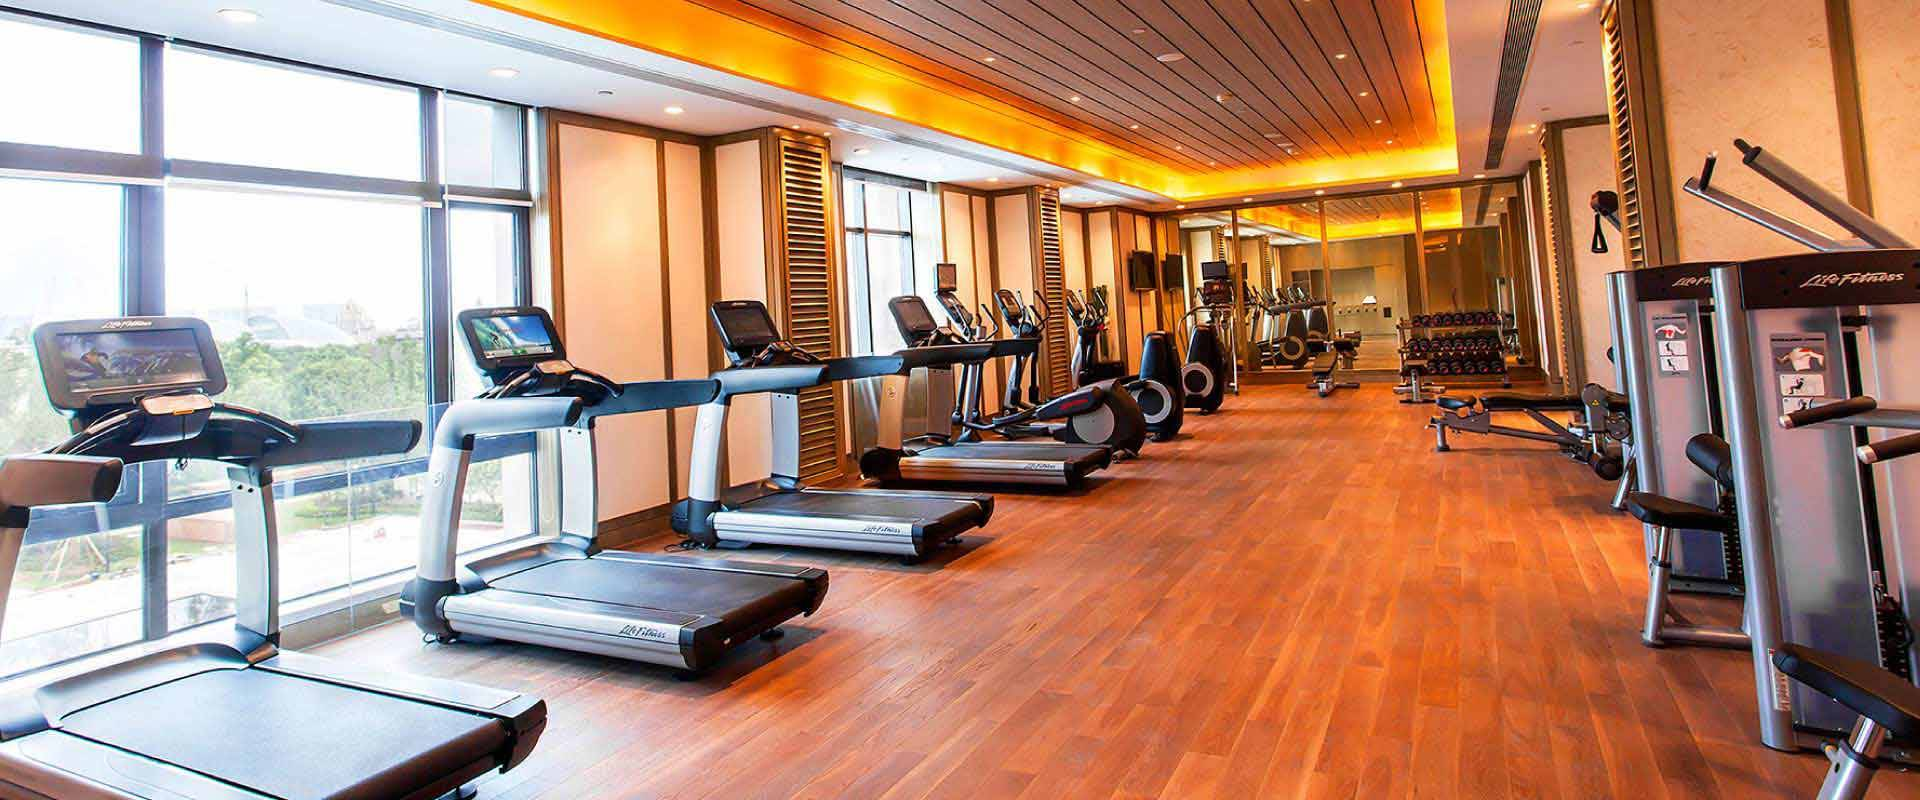 Gym And Wellness Centre Facilities Marco Polo Changzhou